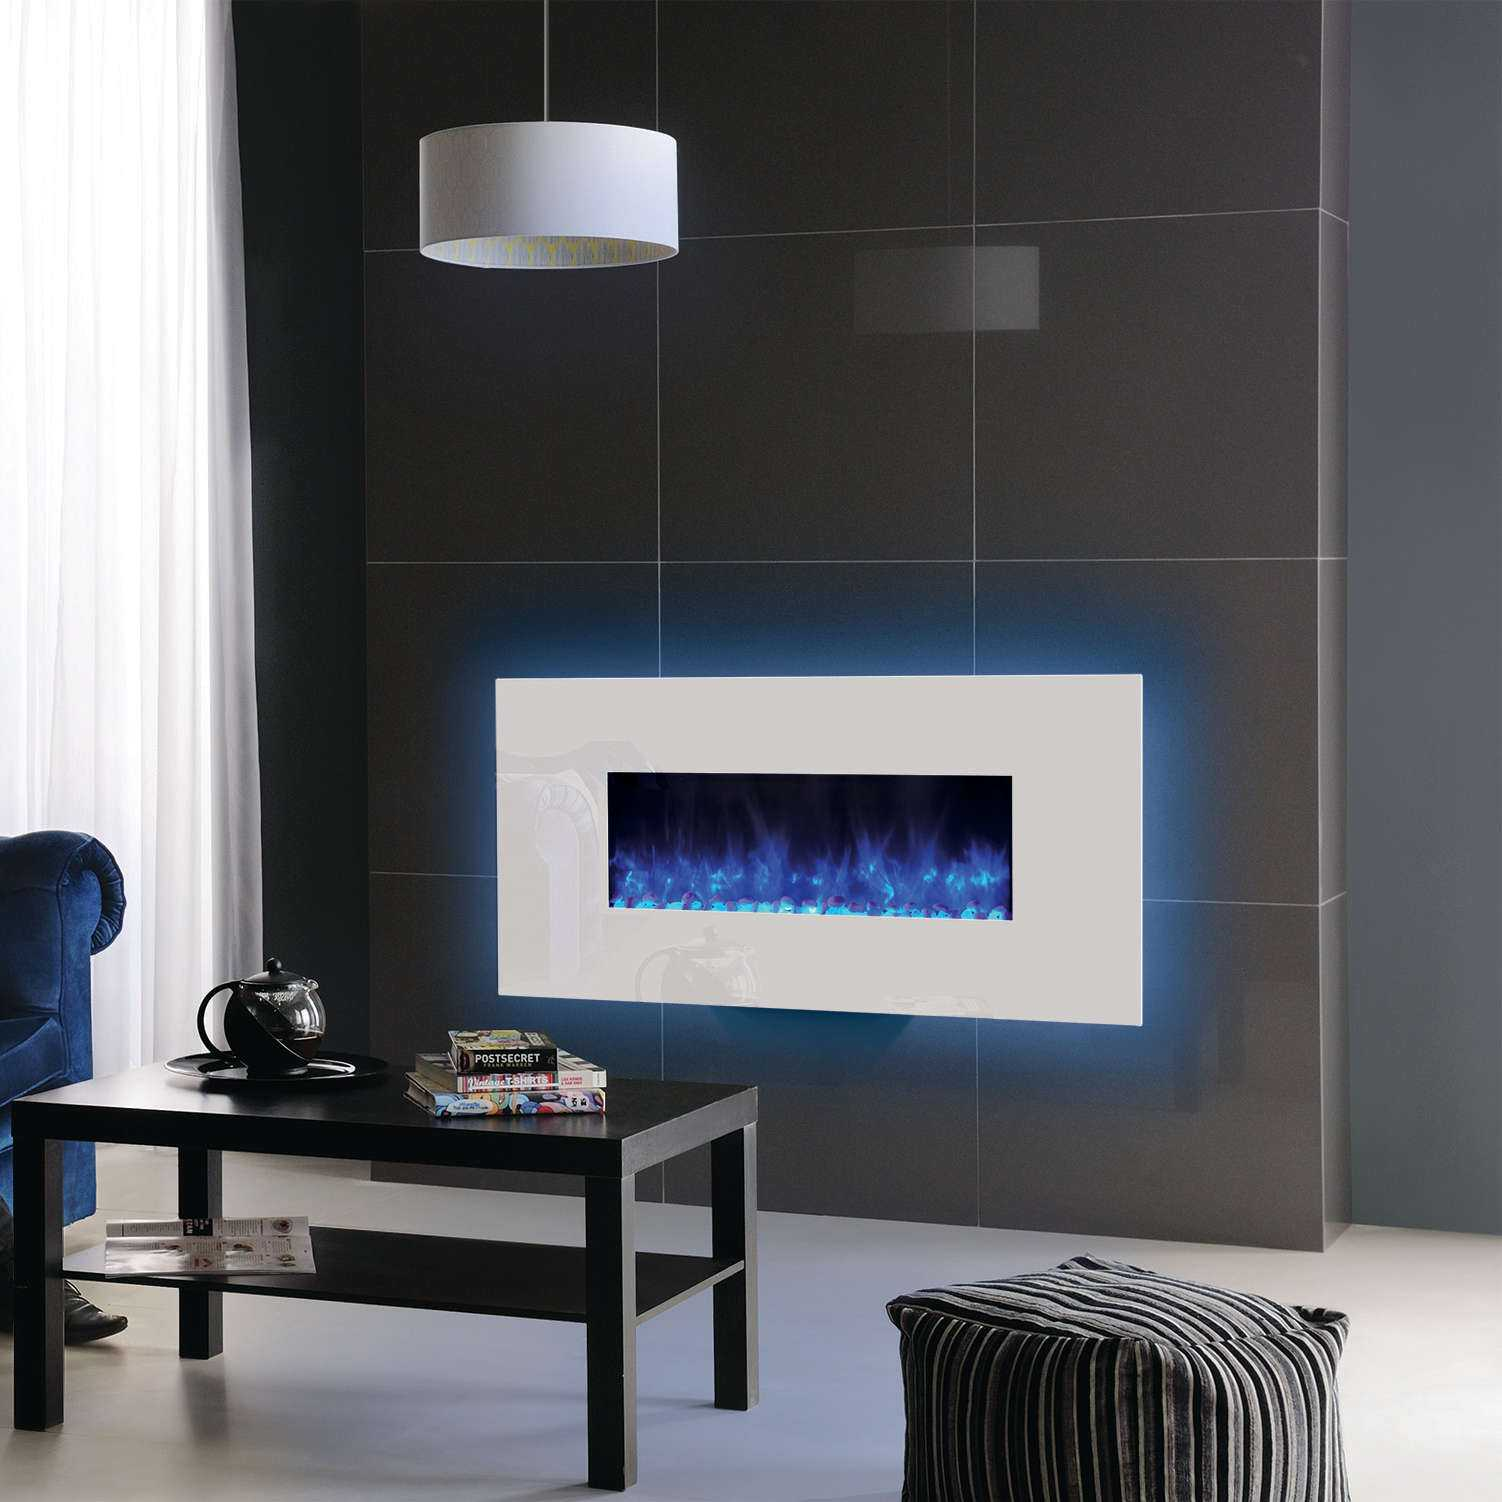 fireplace with blue radiance